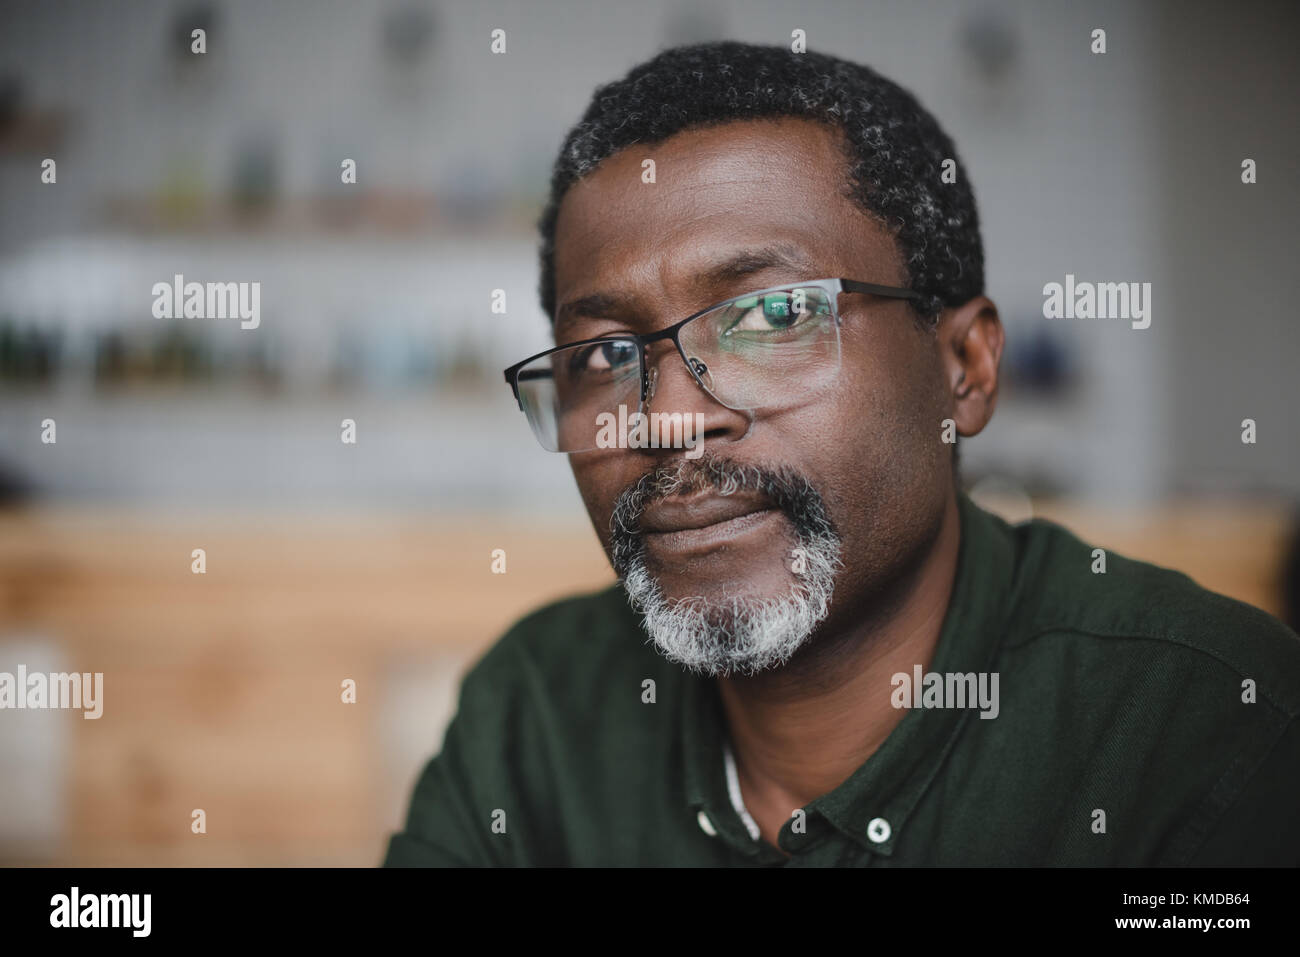 Young african american man in bar Photo Stock